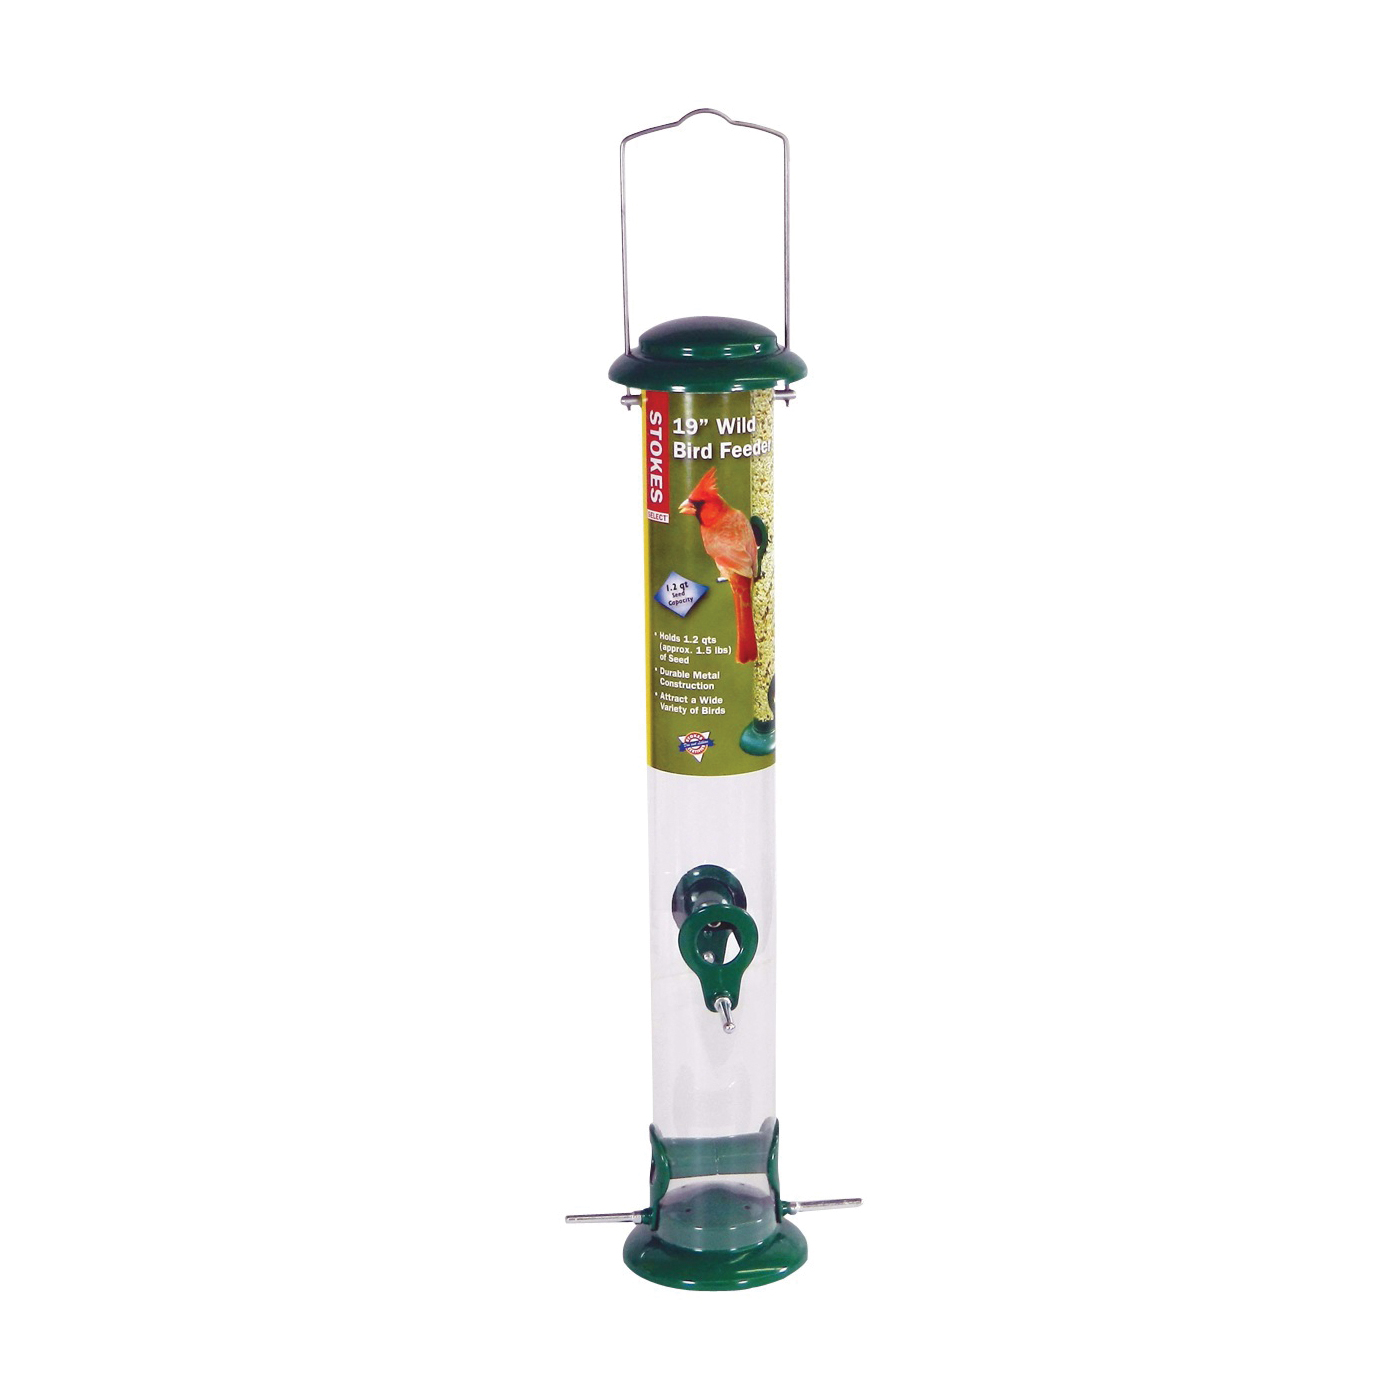 Picture of Stokes Select 38178 Wild Bird Feeder, 19 in H, 1.2 qt, Metal, Green, Polyester Powder-Coated